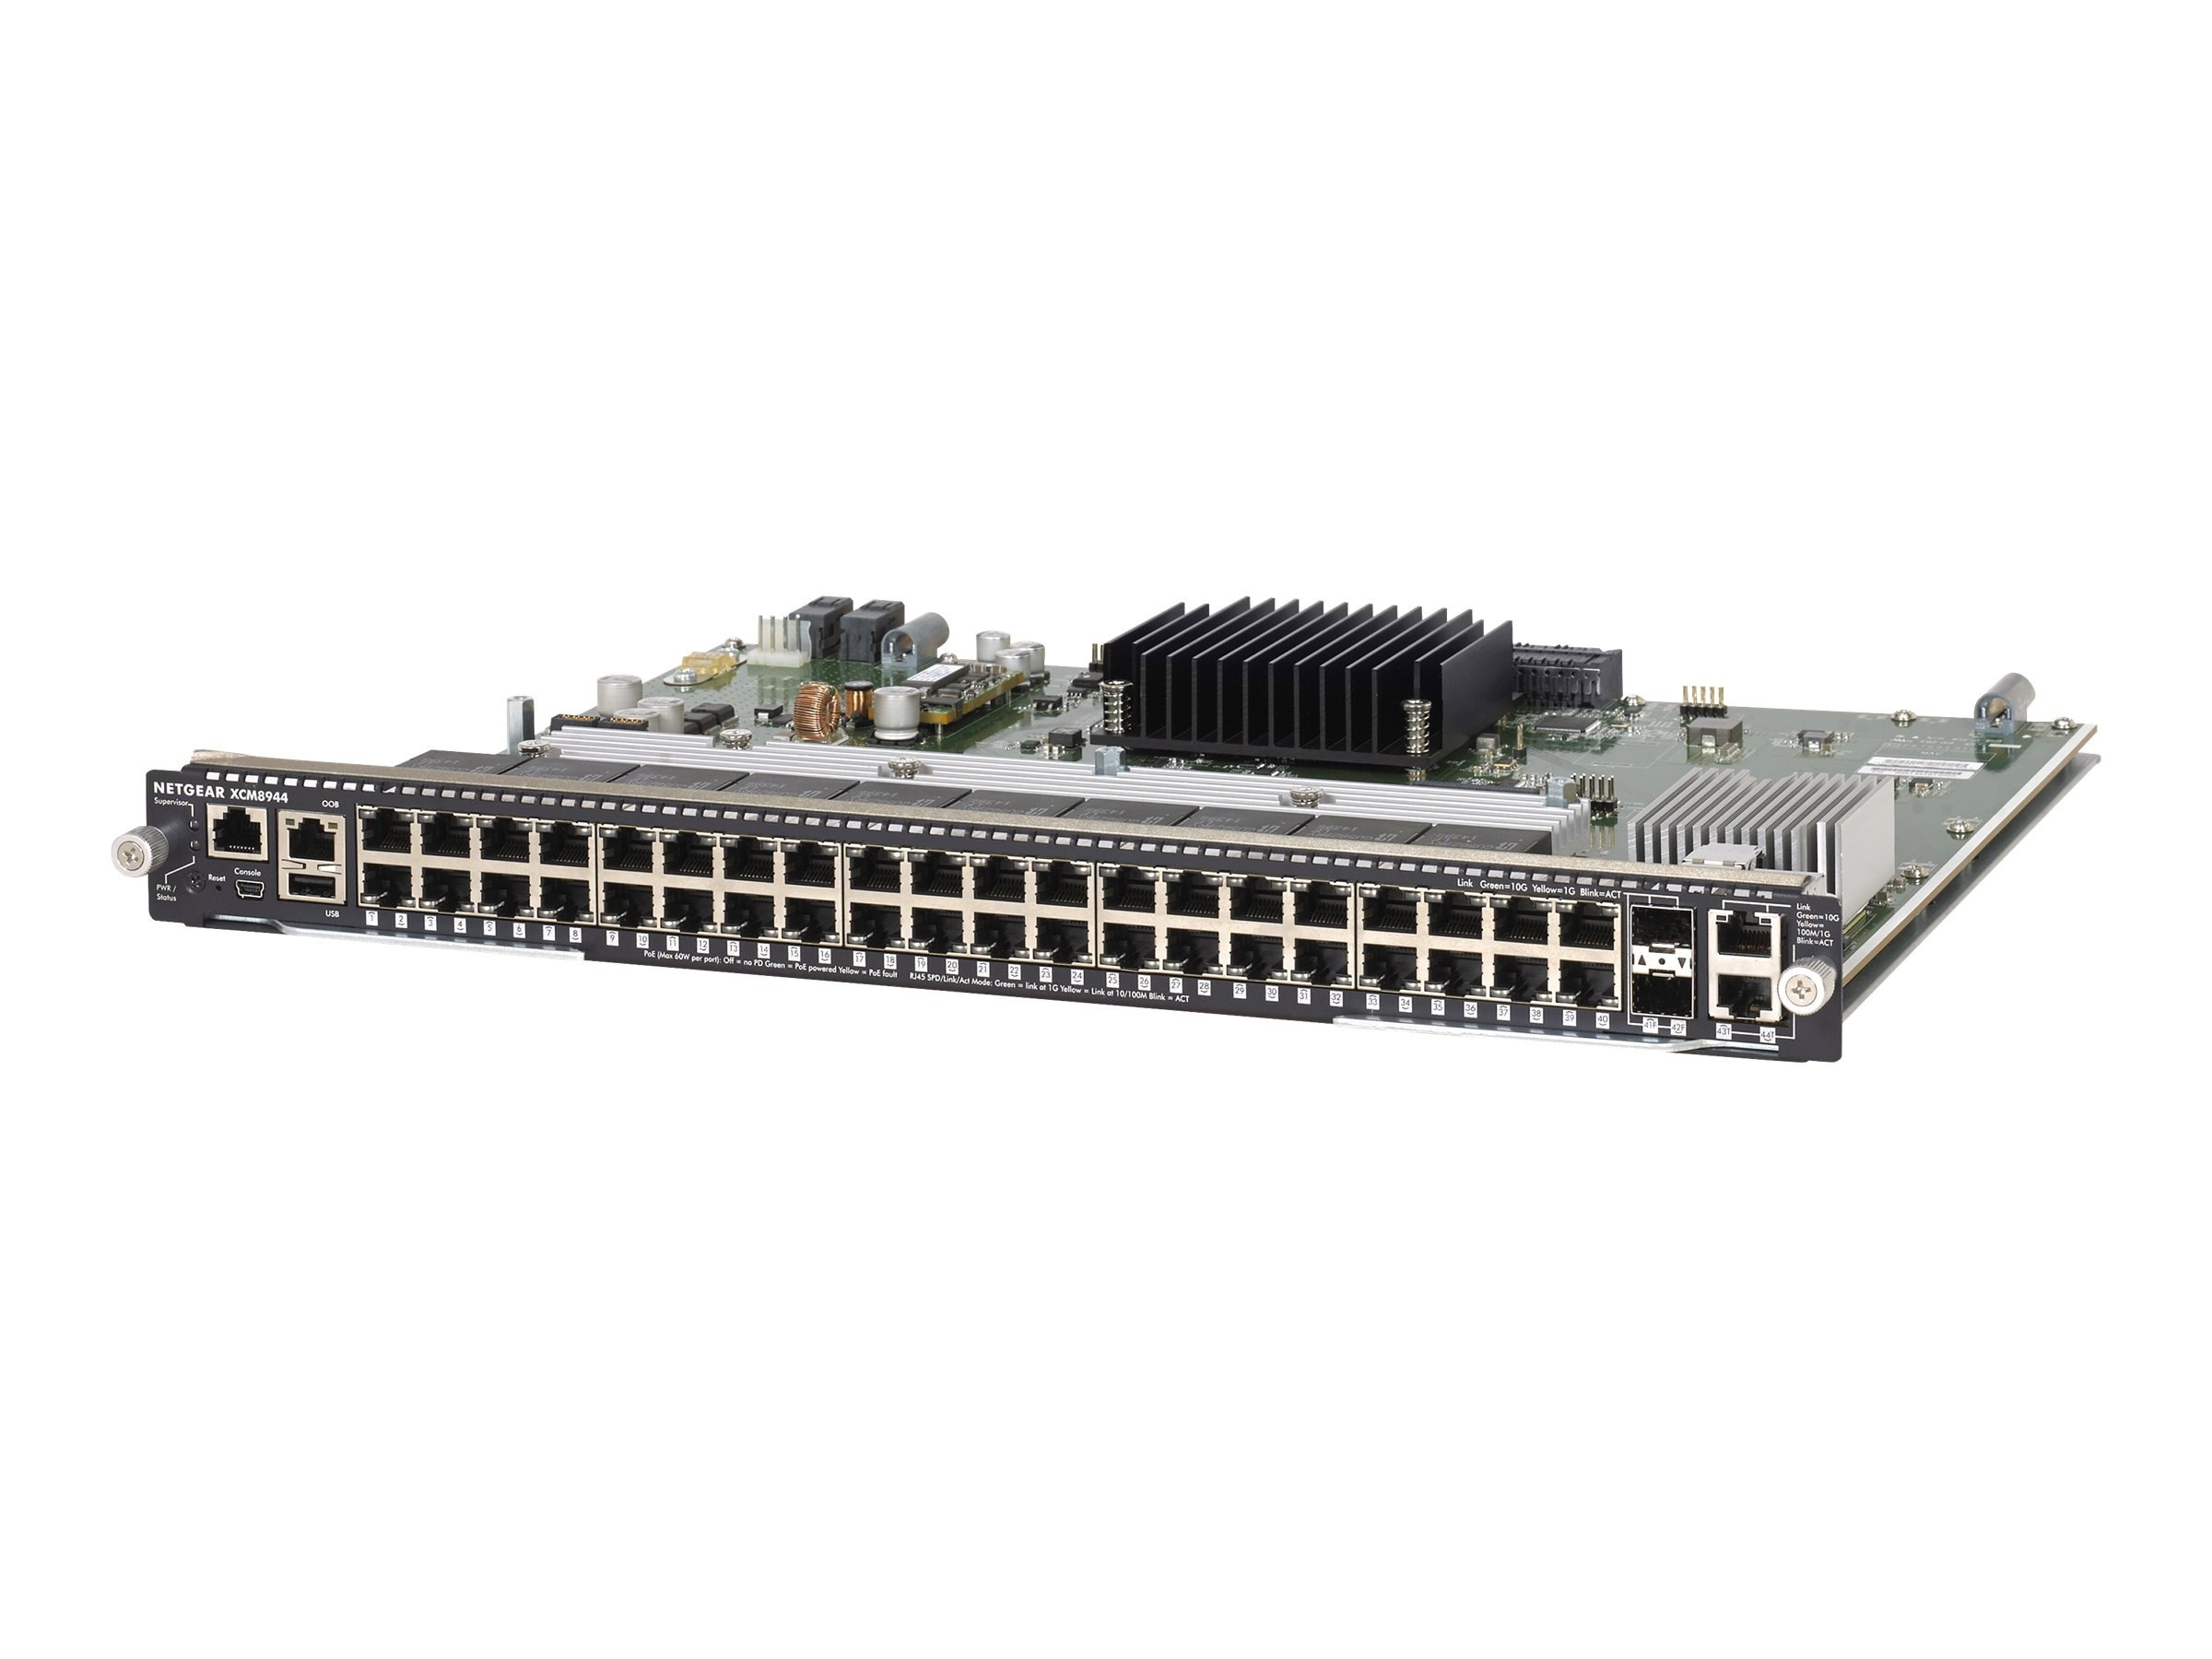 Netgear M6100 Chassis Series 40x1G and 4x10G Blade, XCM8944-10000S